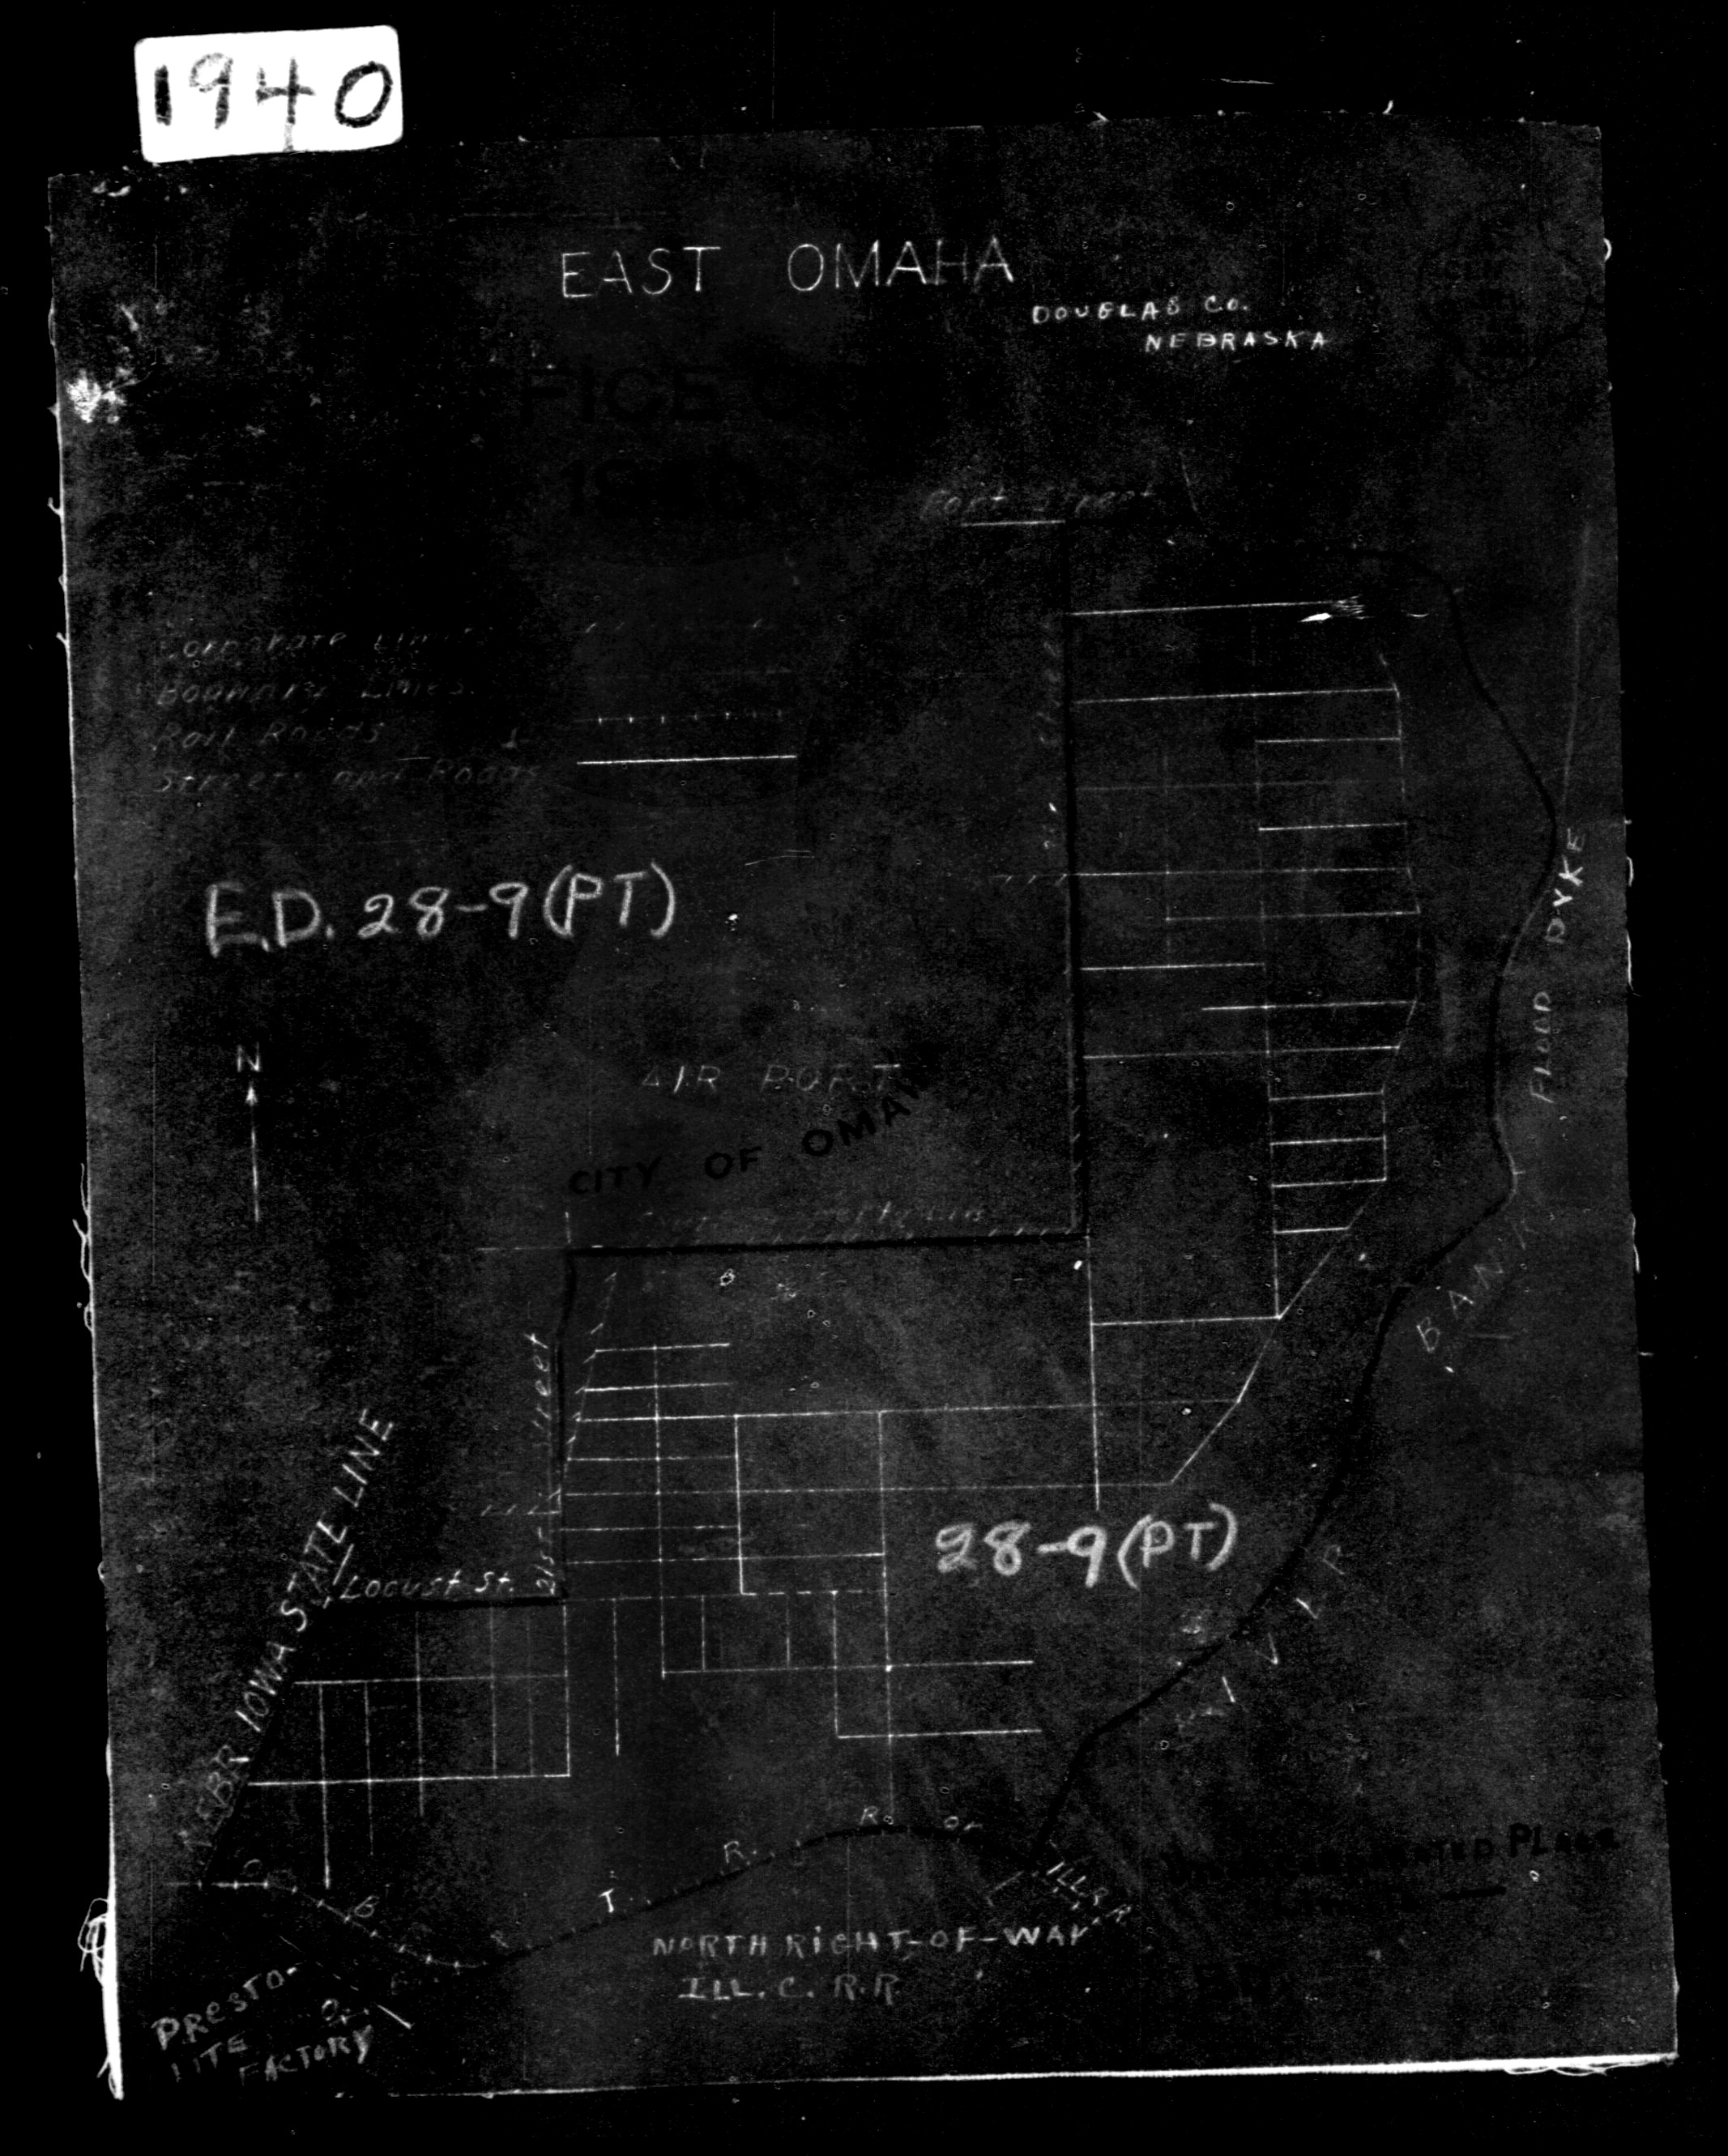 Map of East Omaha, Nebraska in 1940